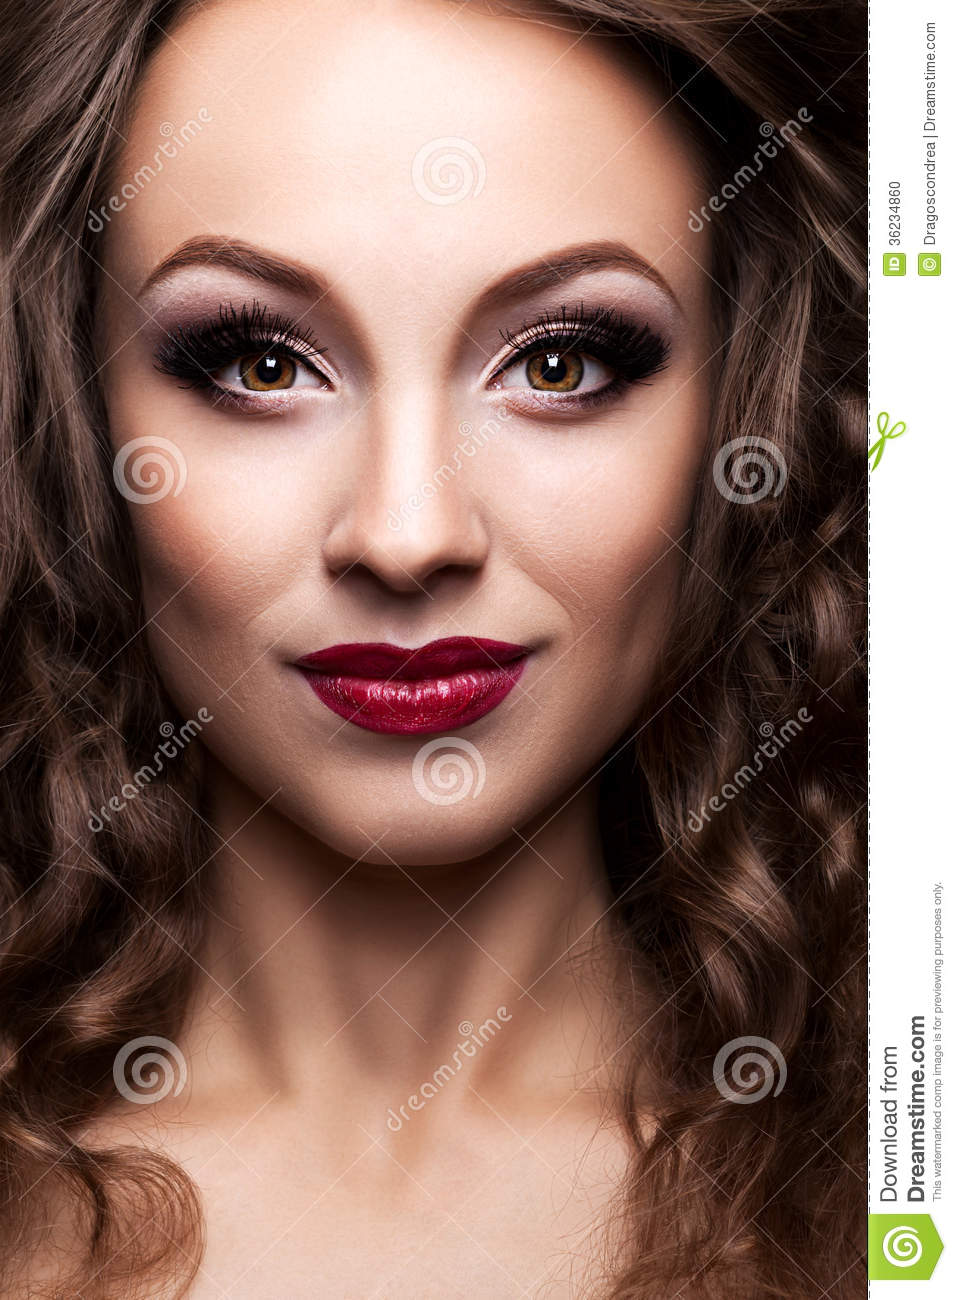 Beauty Portrait Of A Young Beautiful Teen Girl Stock: Fashion Beauty Portrait Of Beautiful Girl With